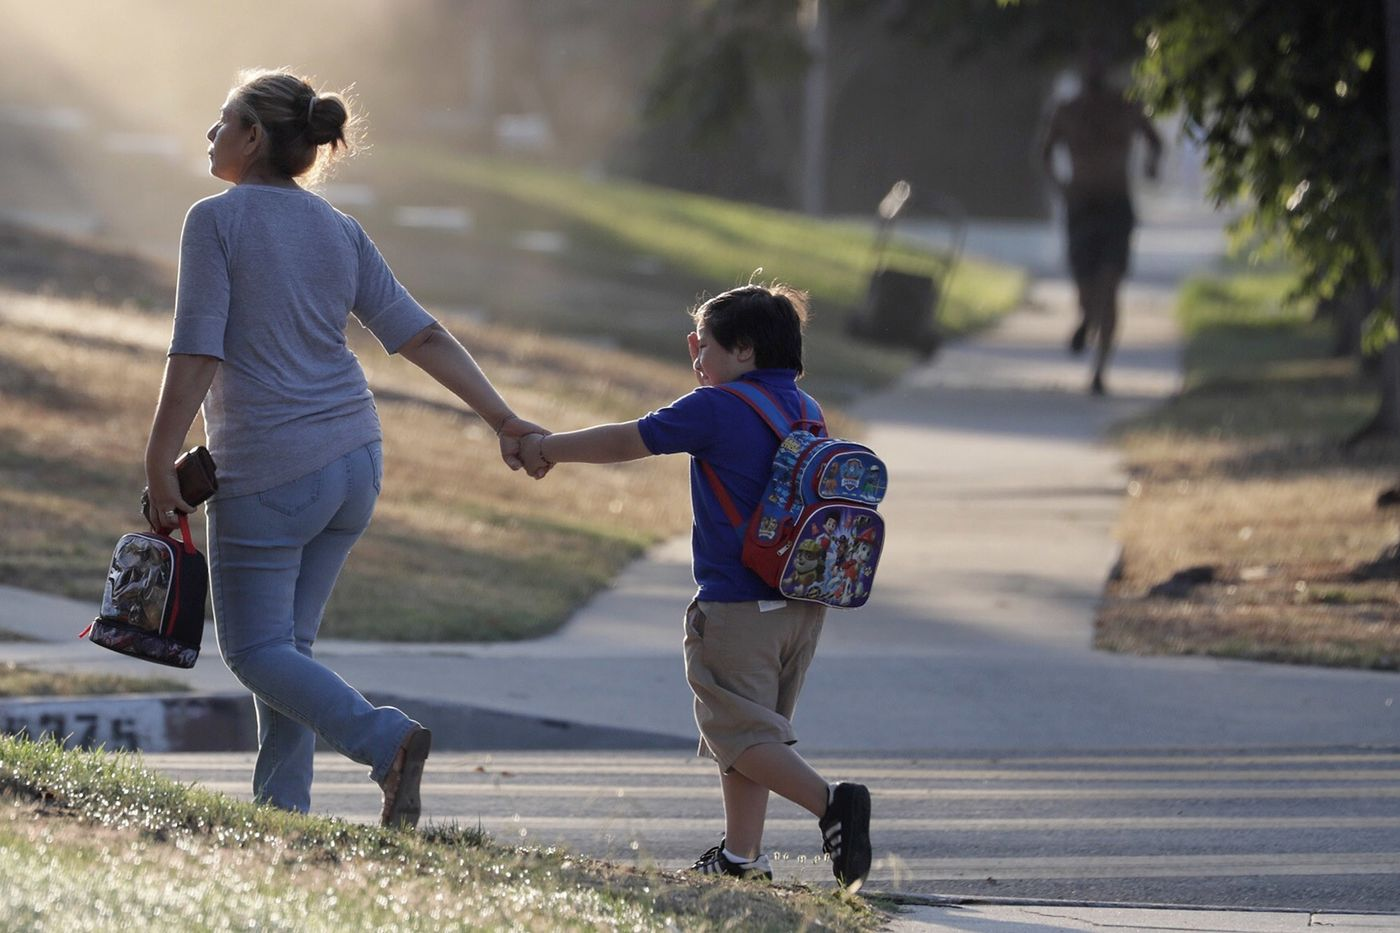 Students arrive at Baldwin Hills Elementary School on Aug. 14, 2018, for the first day of class for the Los Angeles Unified School District, the nation's second-largest school system. (Irfan Khan / Los Angeles Times)